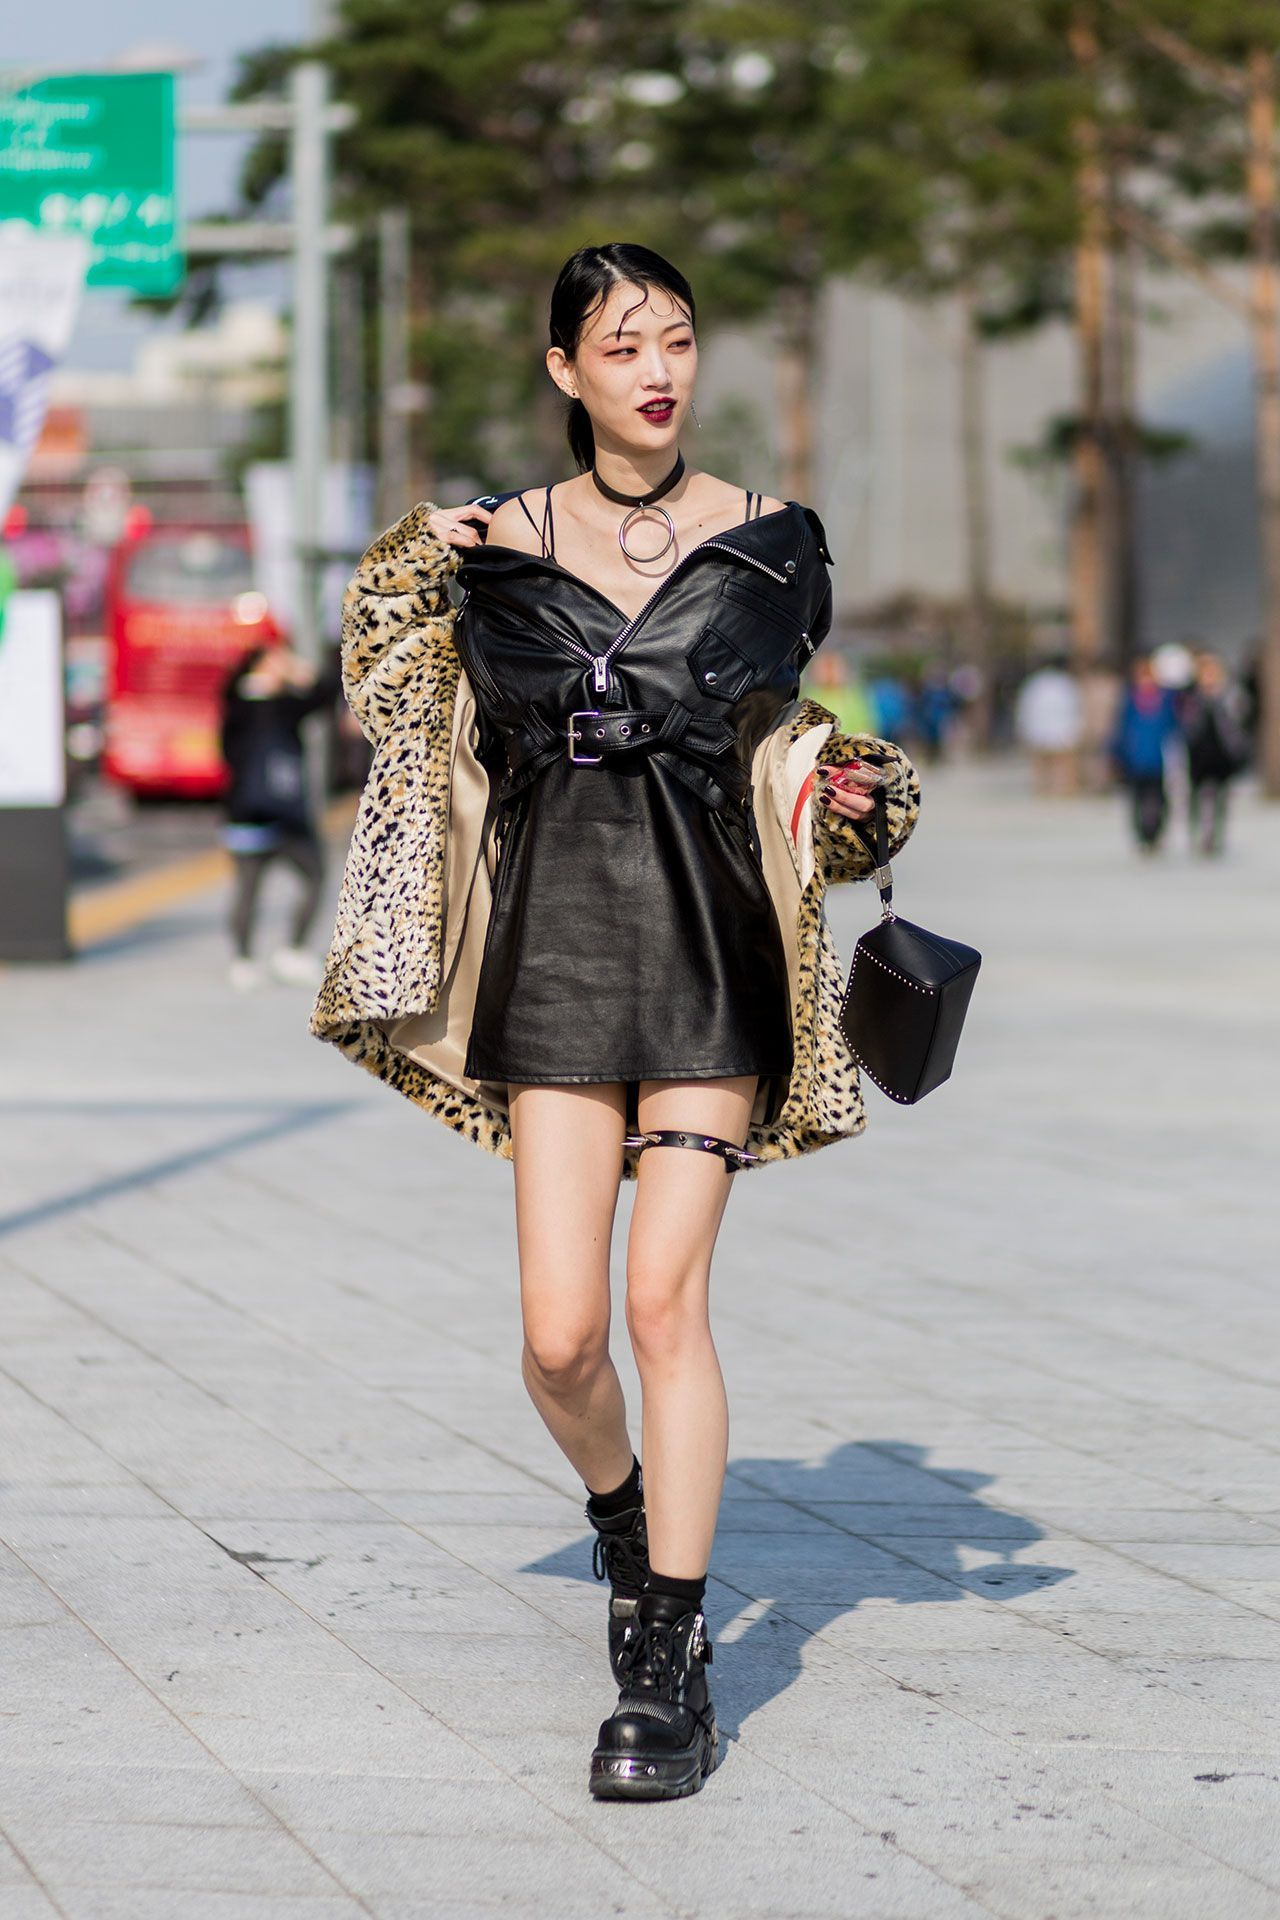 The Best Street Style From Seoul Fashion Week | style ...